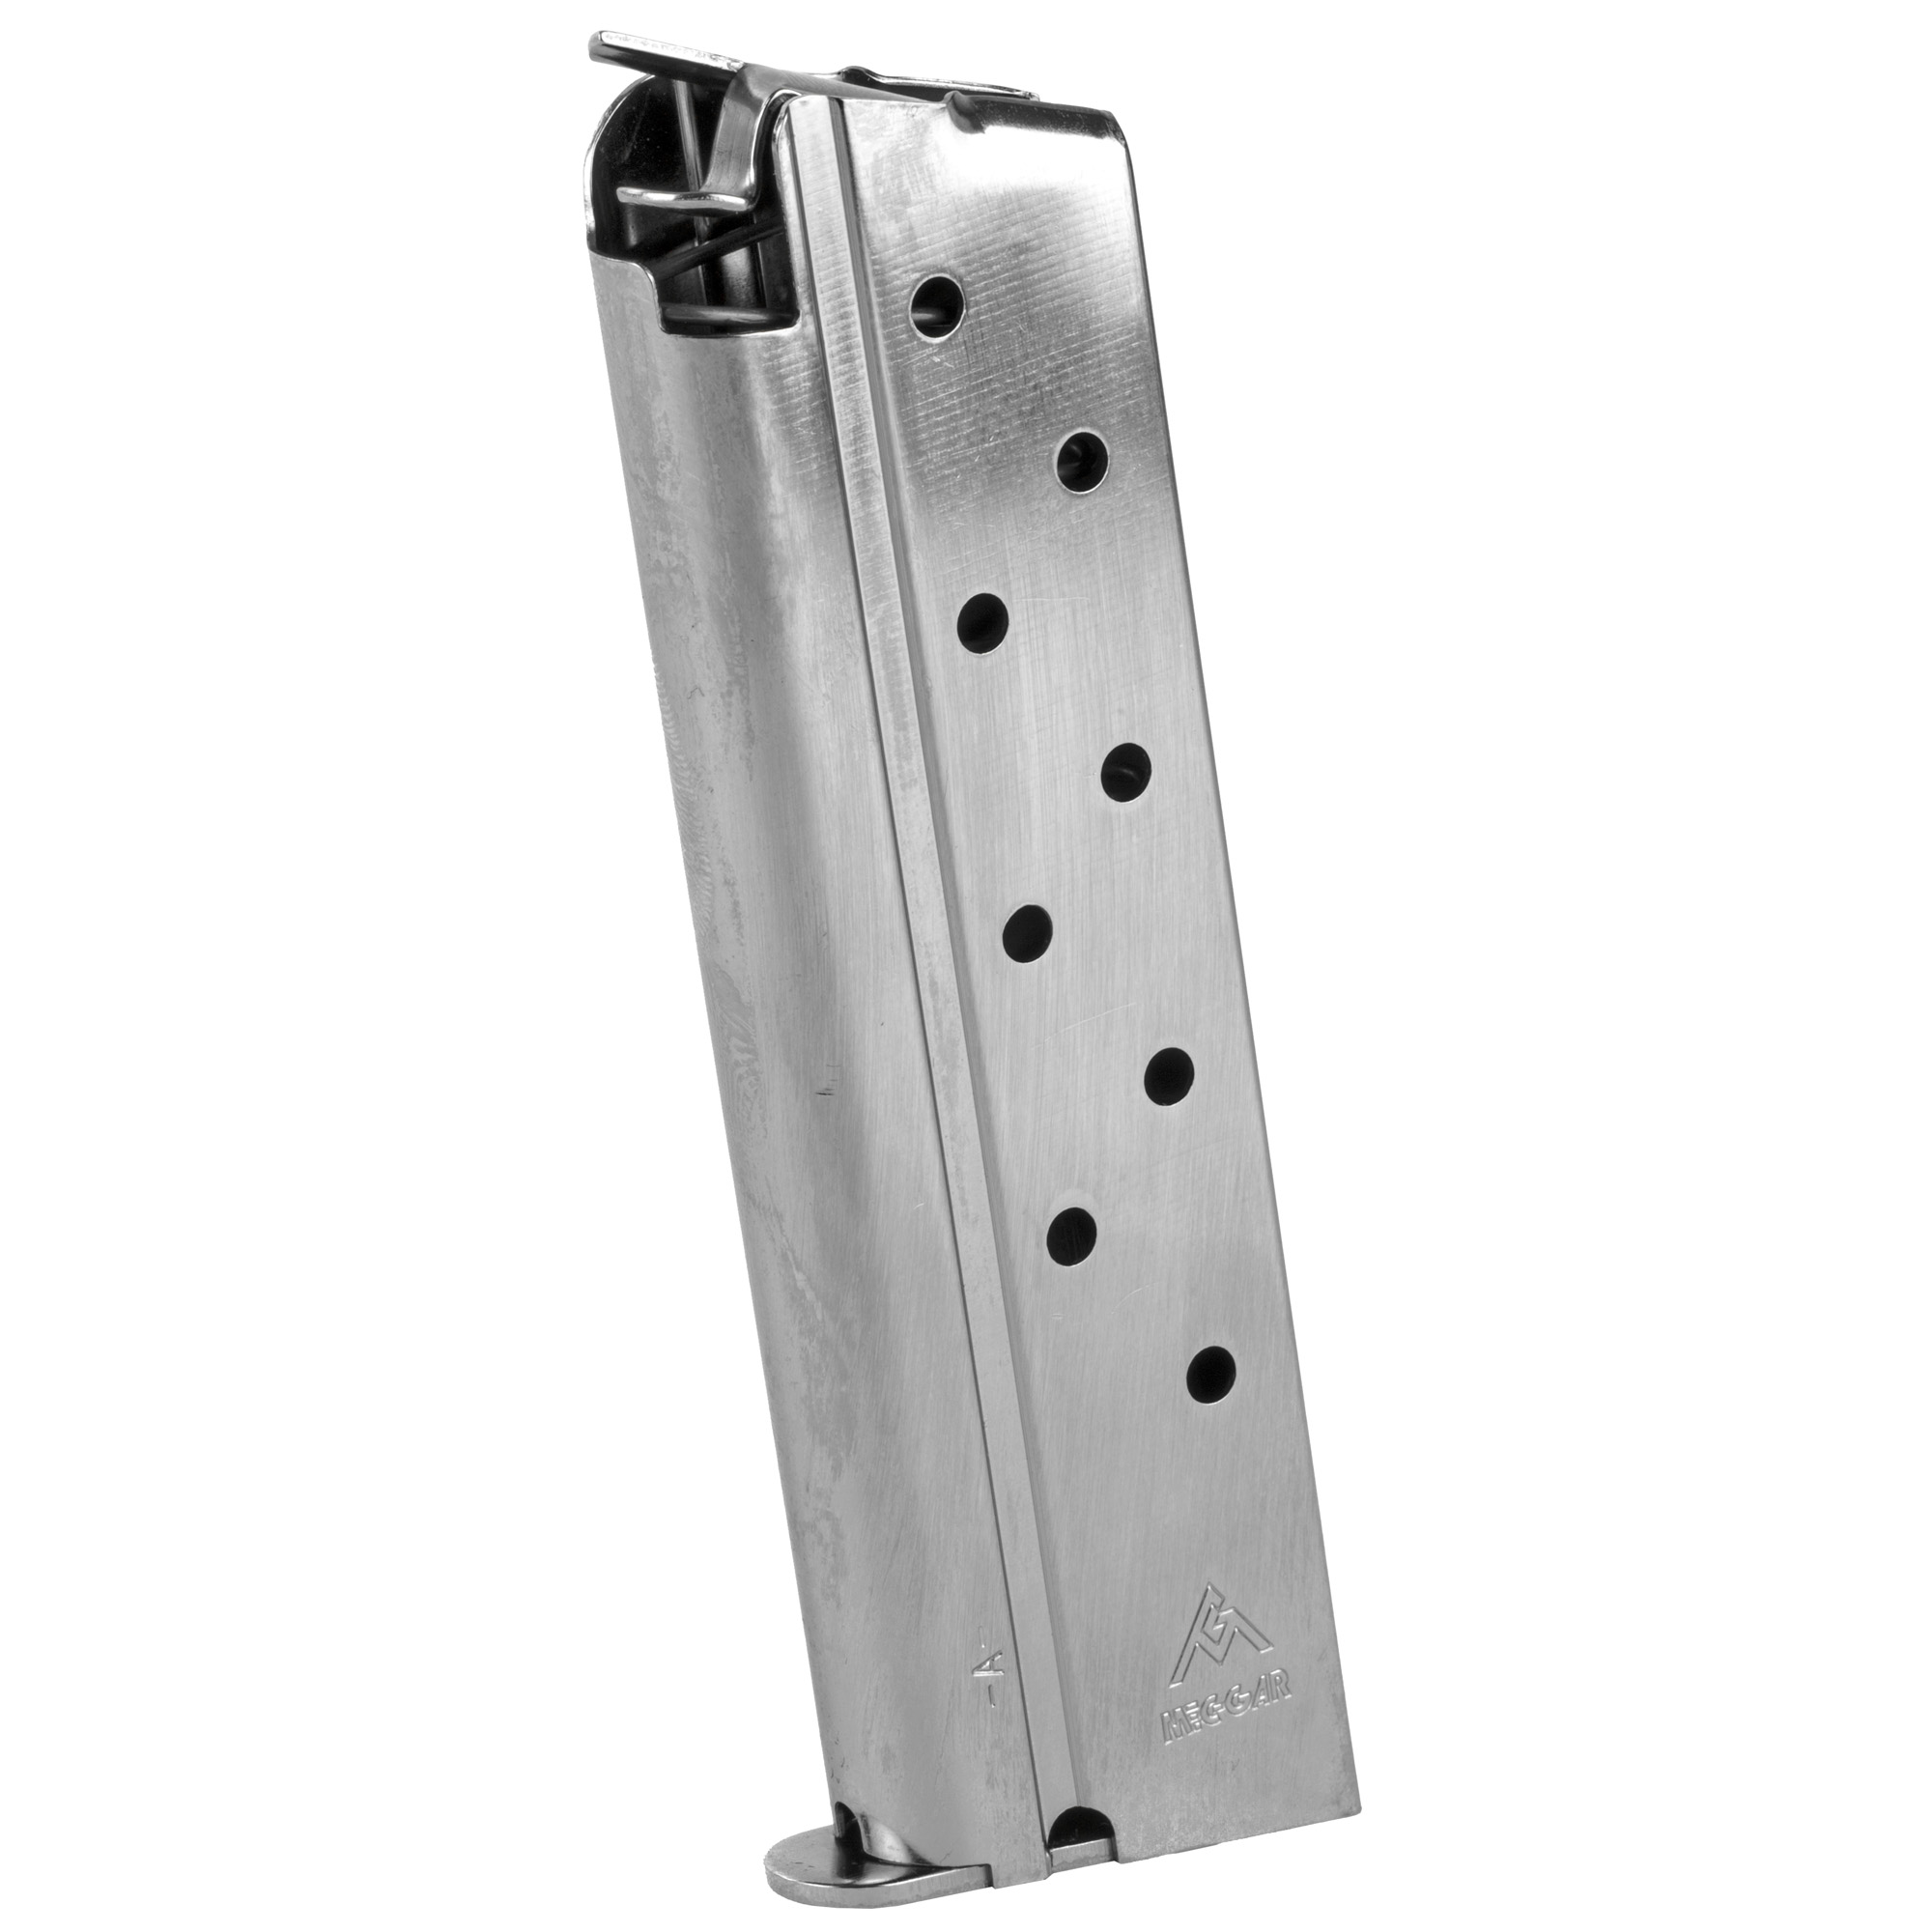 """MEC-GAR magazines meet or exceeded the tolerance guidelines"""" stringent testing and exacting requirements of military and law enforcement customers around the world. MEC-GAR incorporates the highest level of quality control measures during the manufacturing process and critical dimensions are regularly checked to maintain tolerance specifications."""